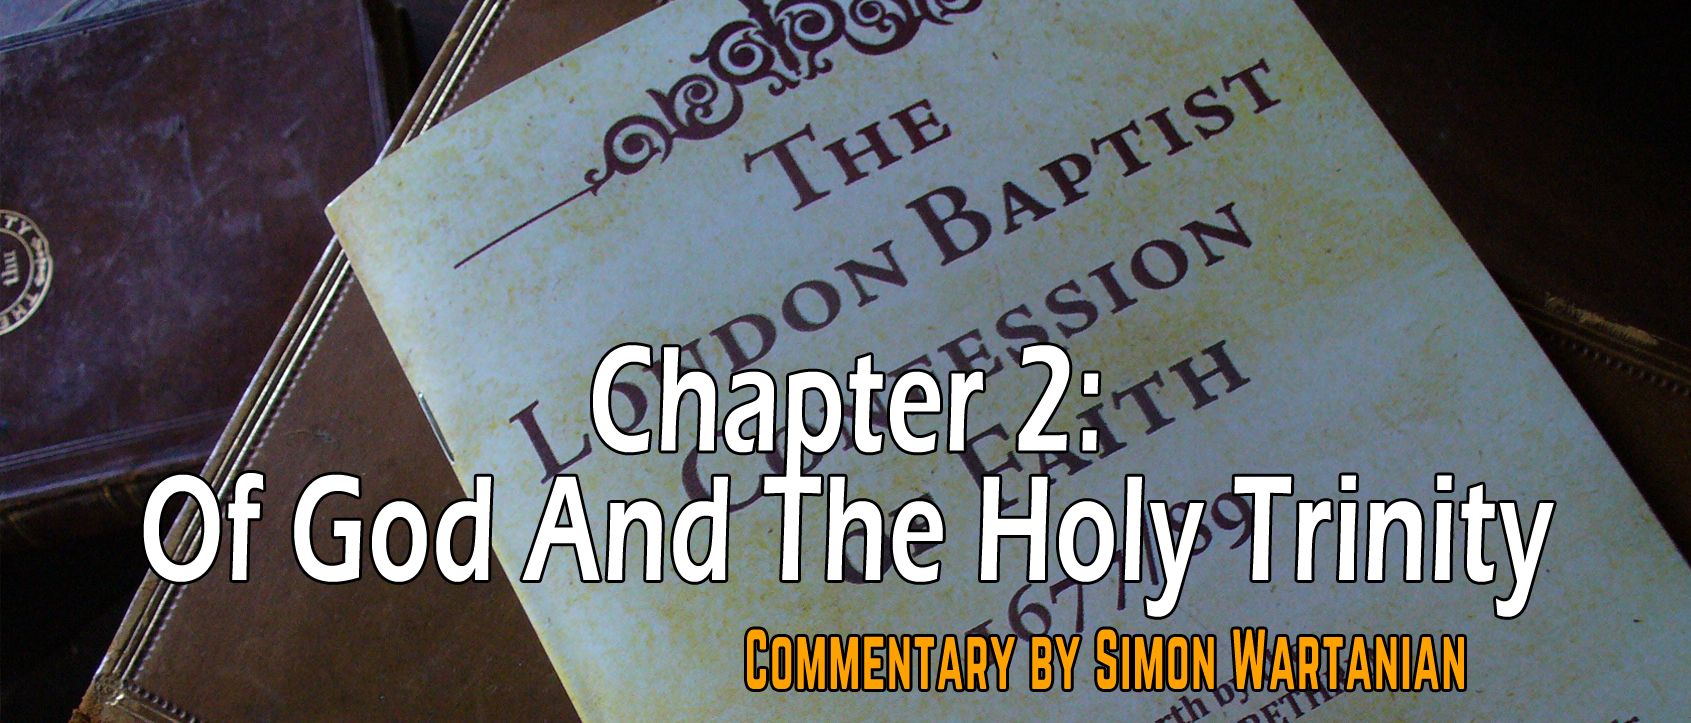 1689 Baptist Confession Chapter 2: Of God and of the Holy Trinity - Commentary